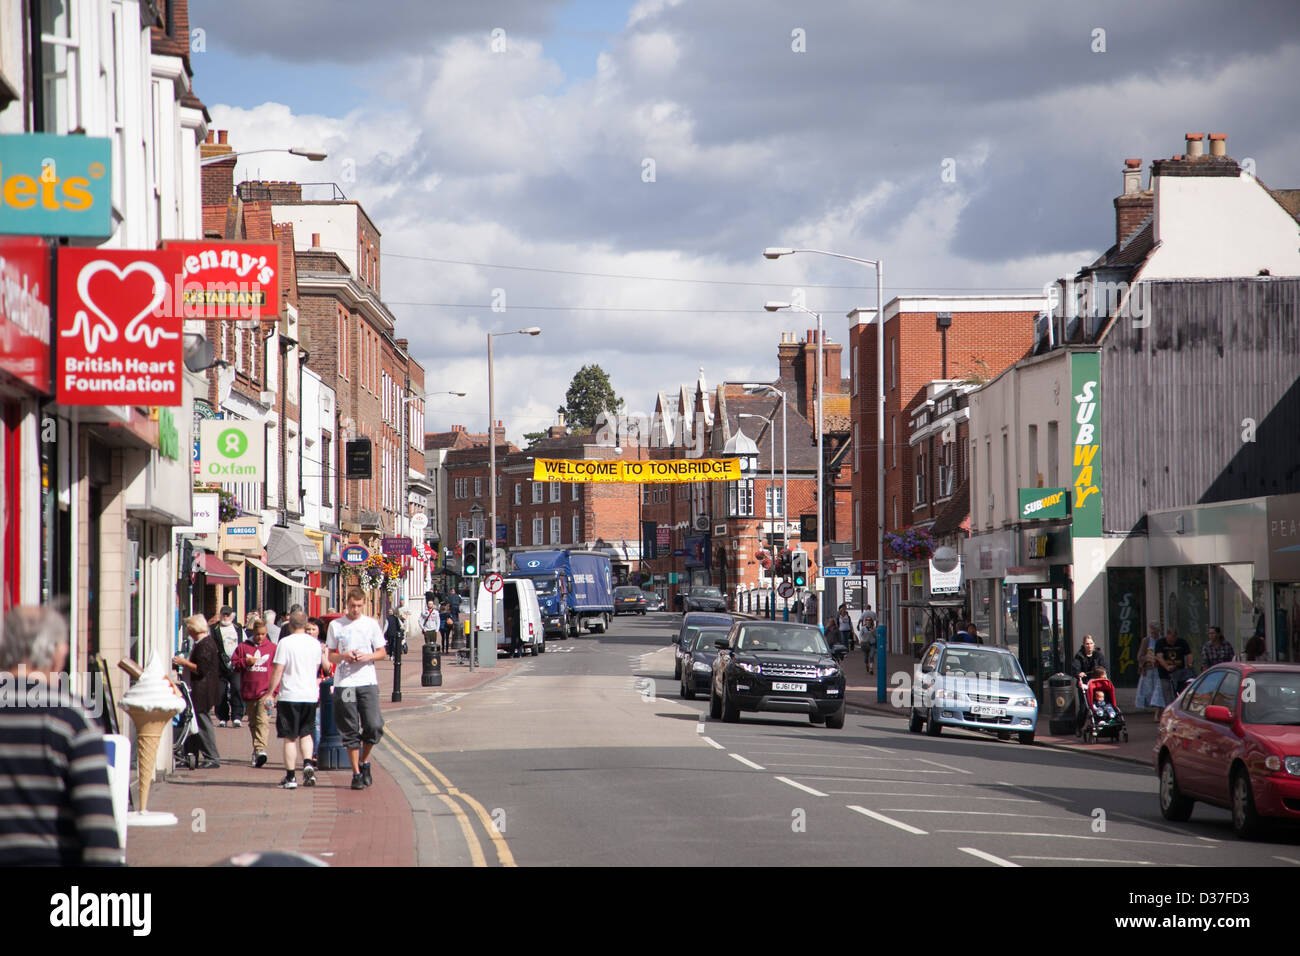 Charity Shops In Tonbridge High Street Kent Uk Stock Photo